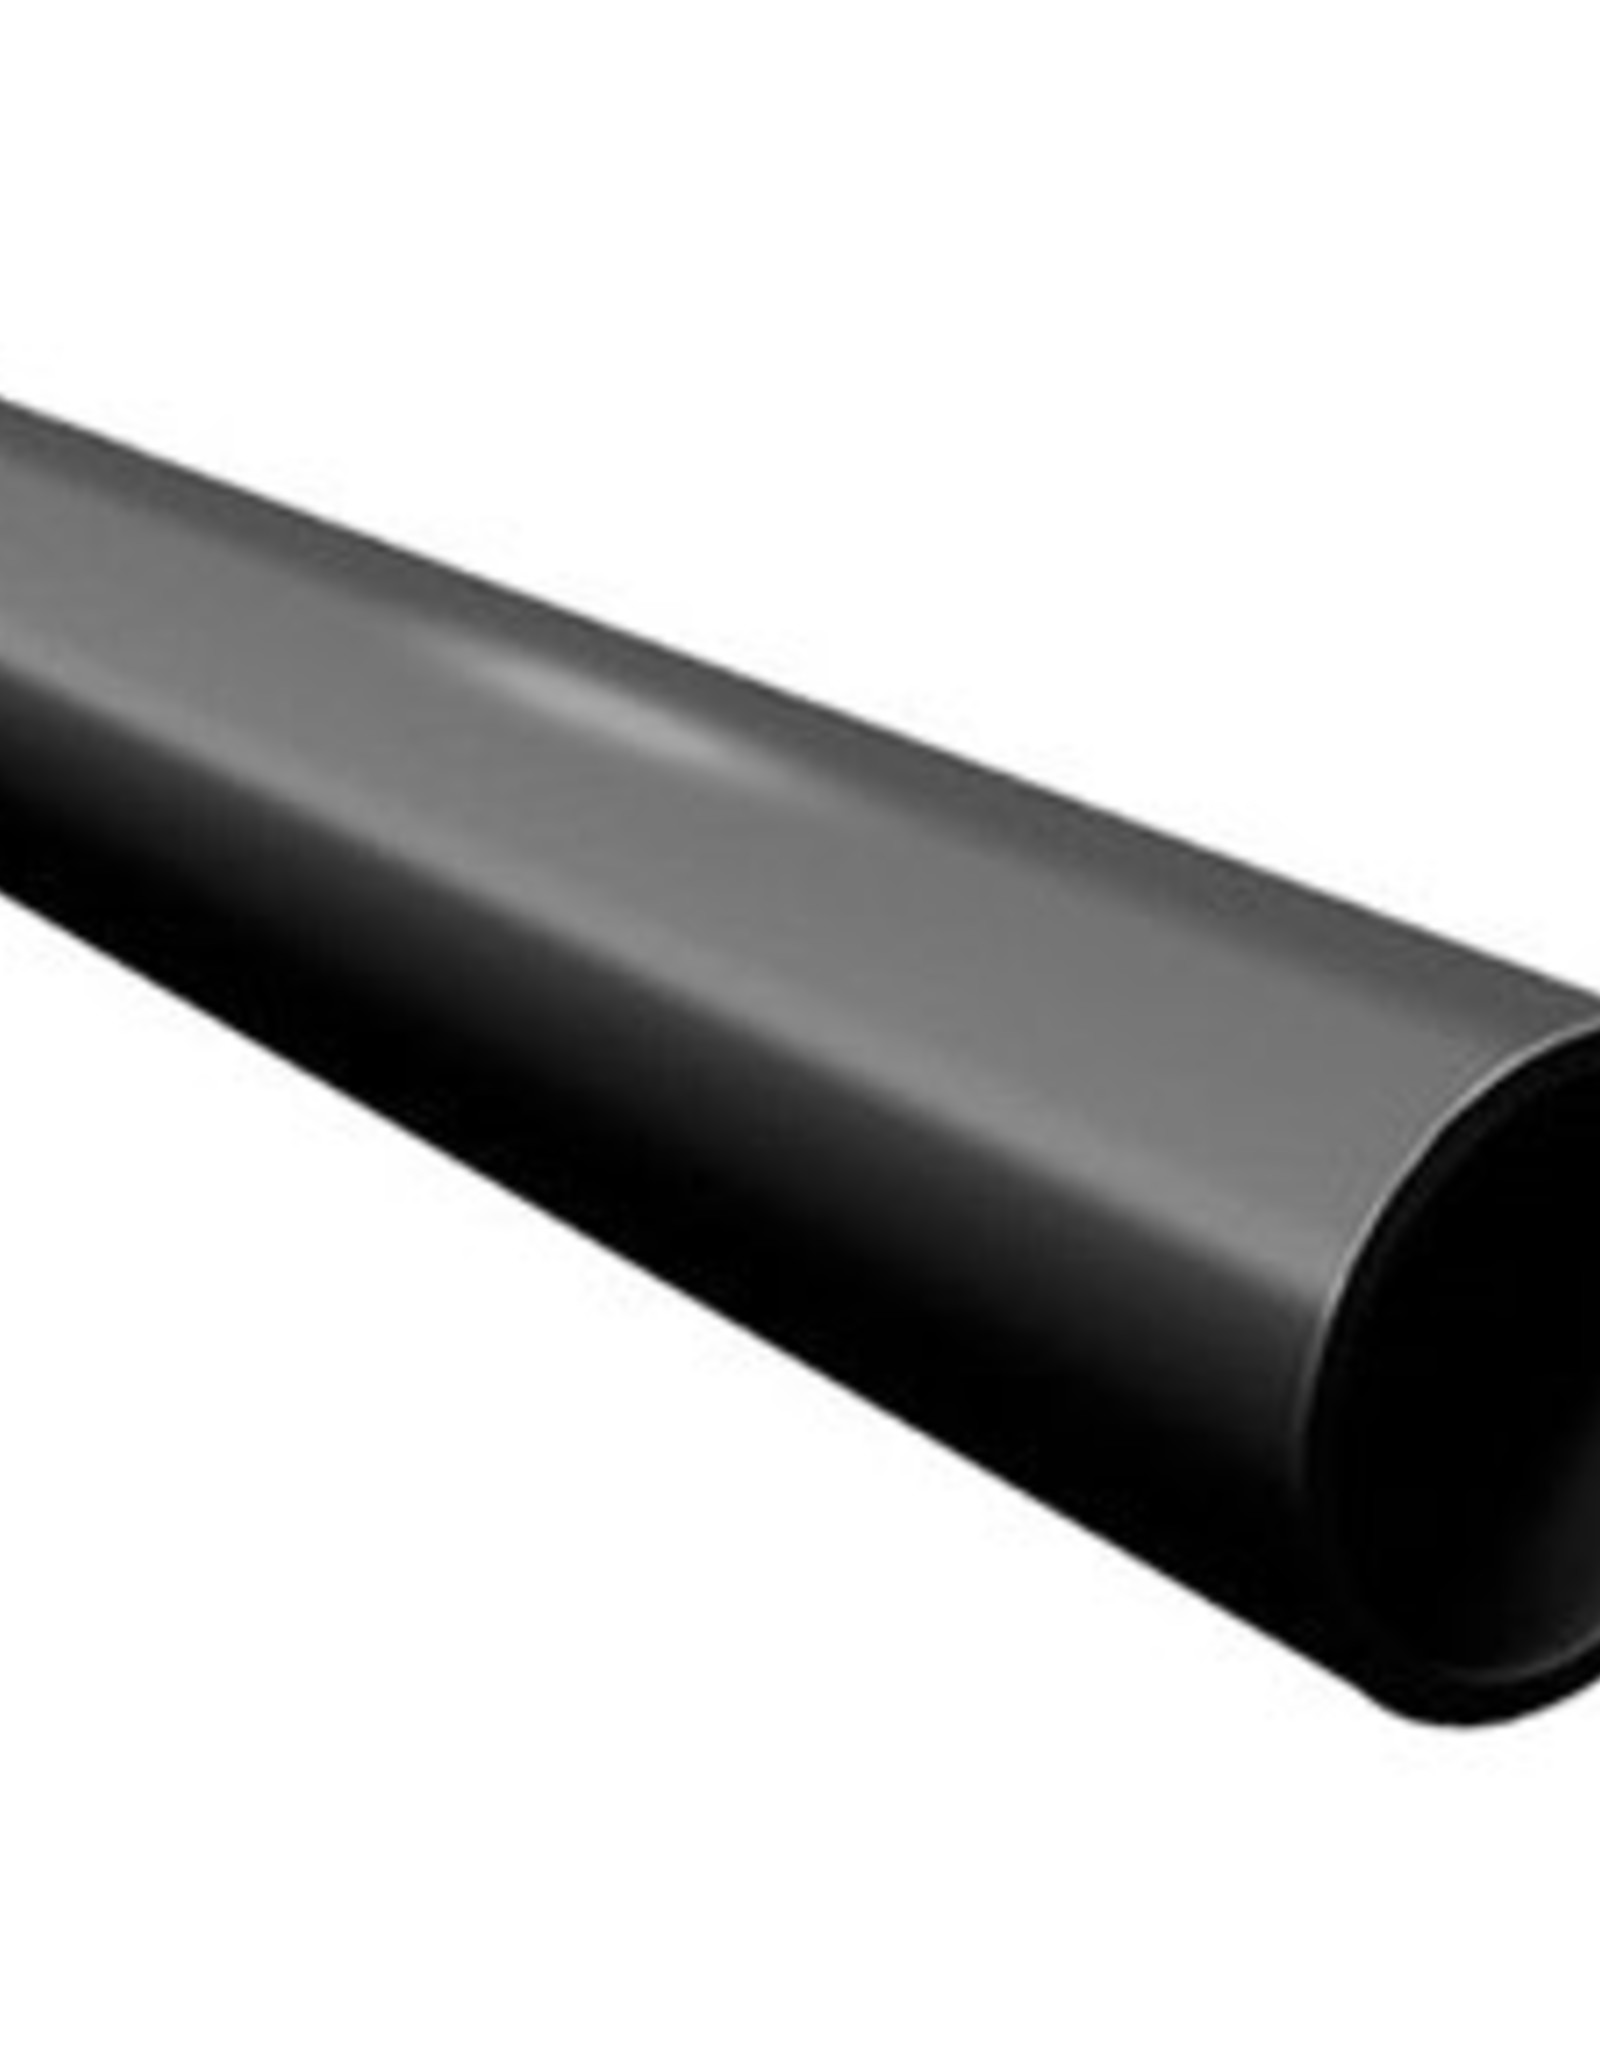 "3"" X 12' ABS SOLID WALL PIPE"